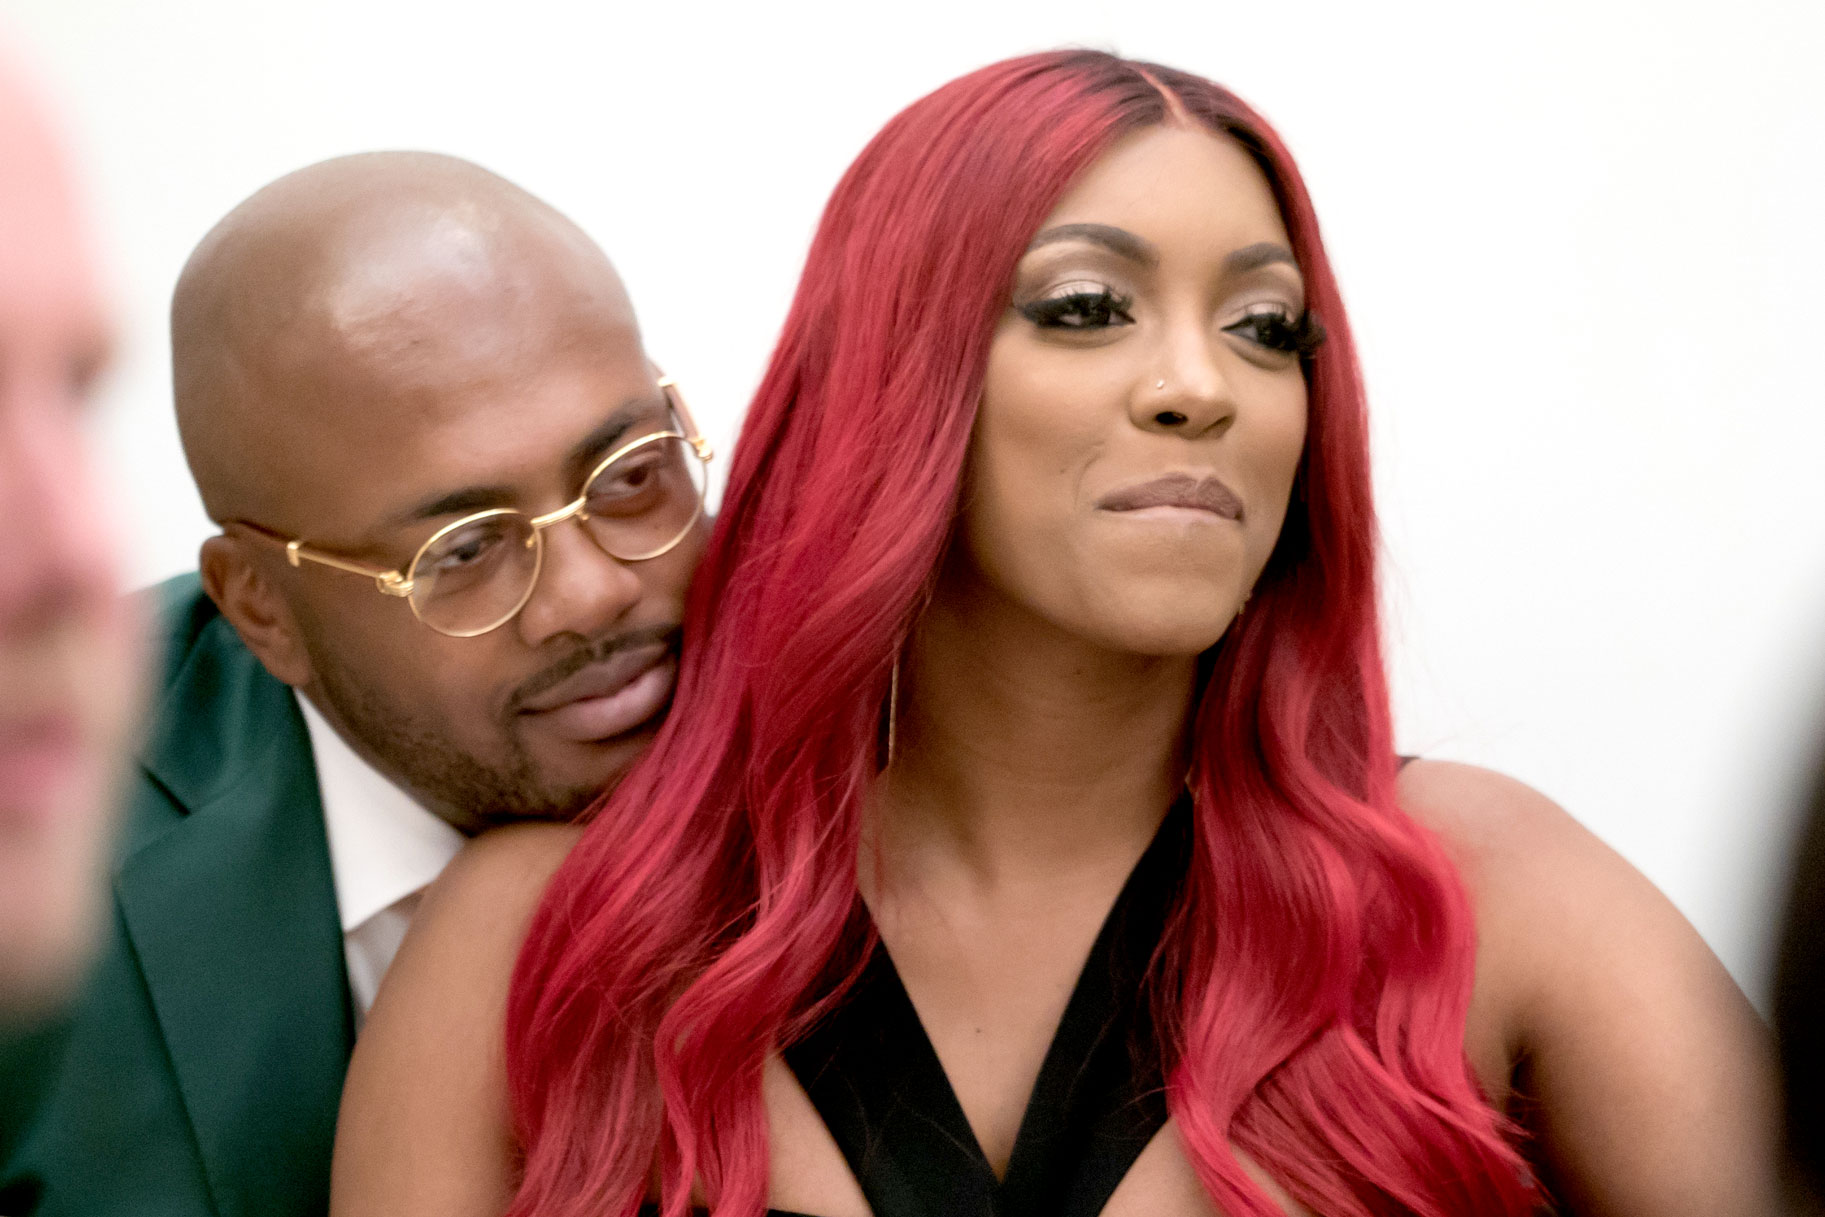 Porsha Williams Is 'The Smize Queen' In This Photo With Cynthia Bailey And Eva Marcille